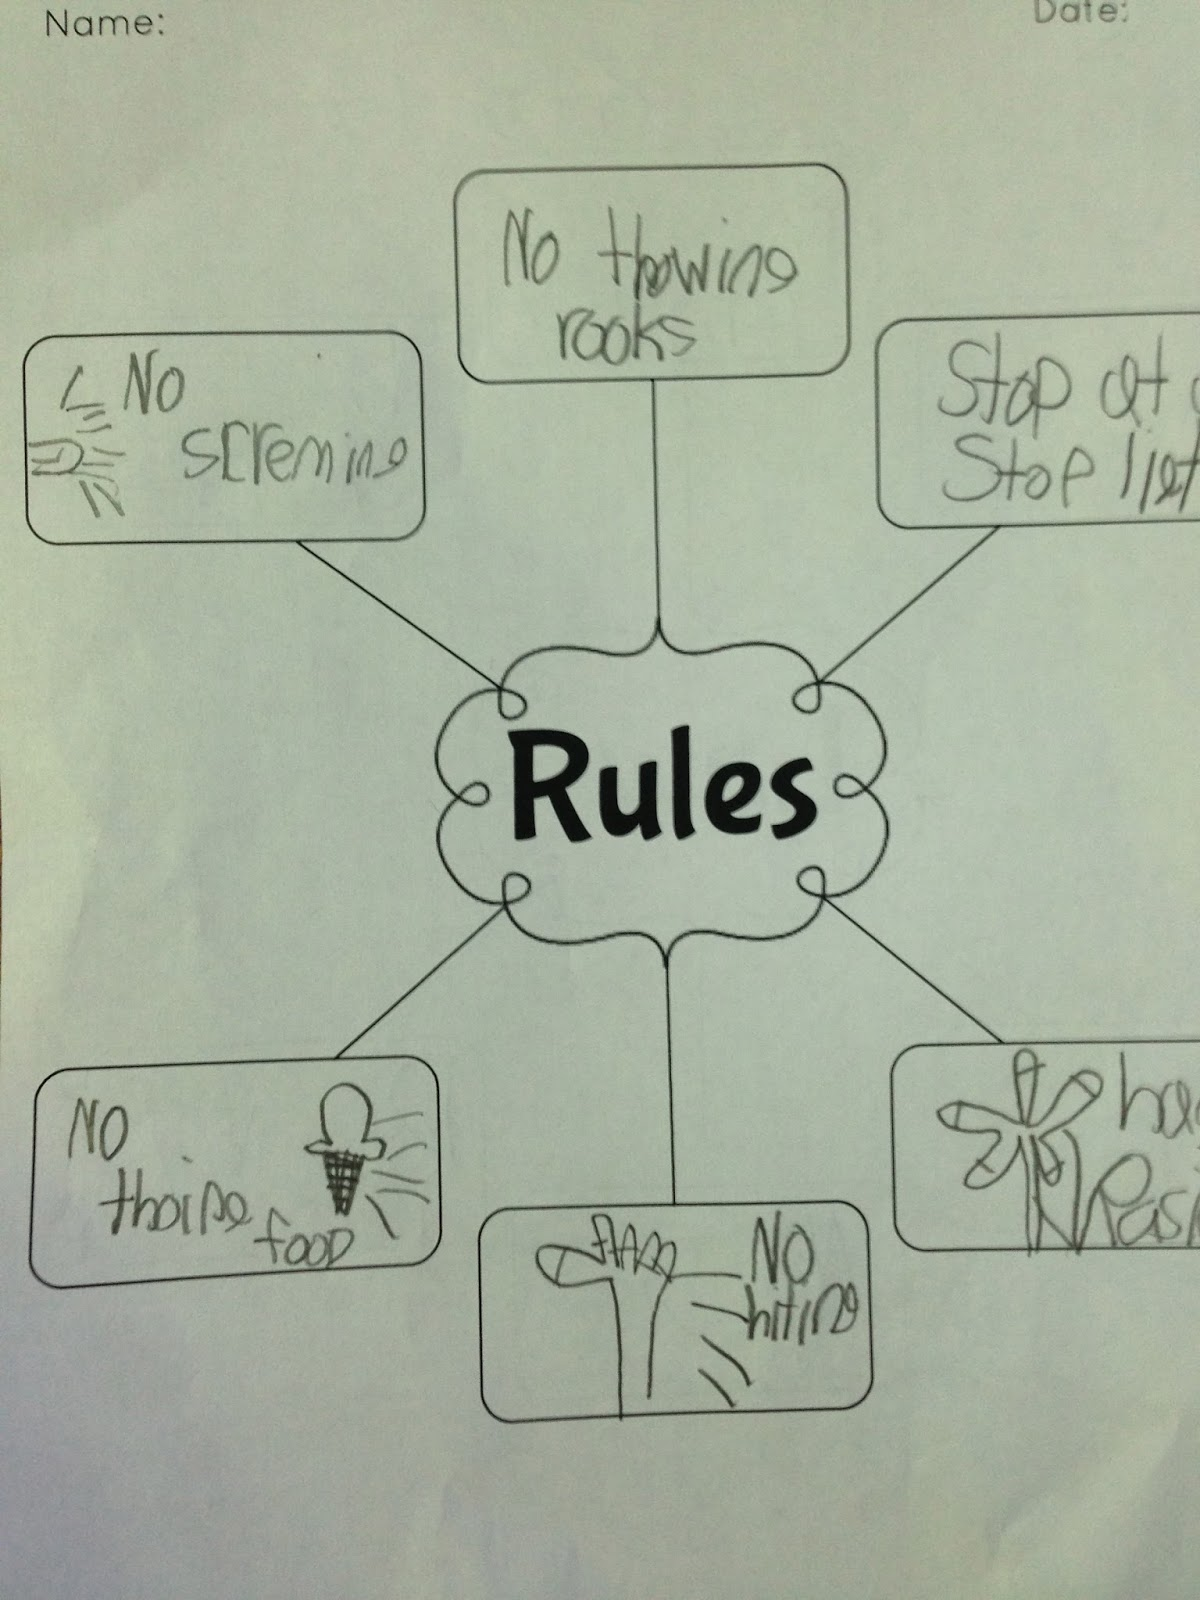 Following Rules At School Worksheet